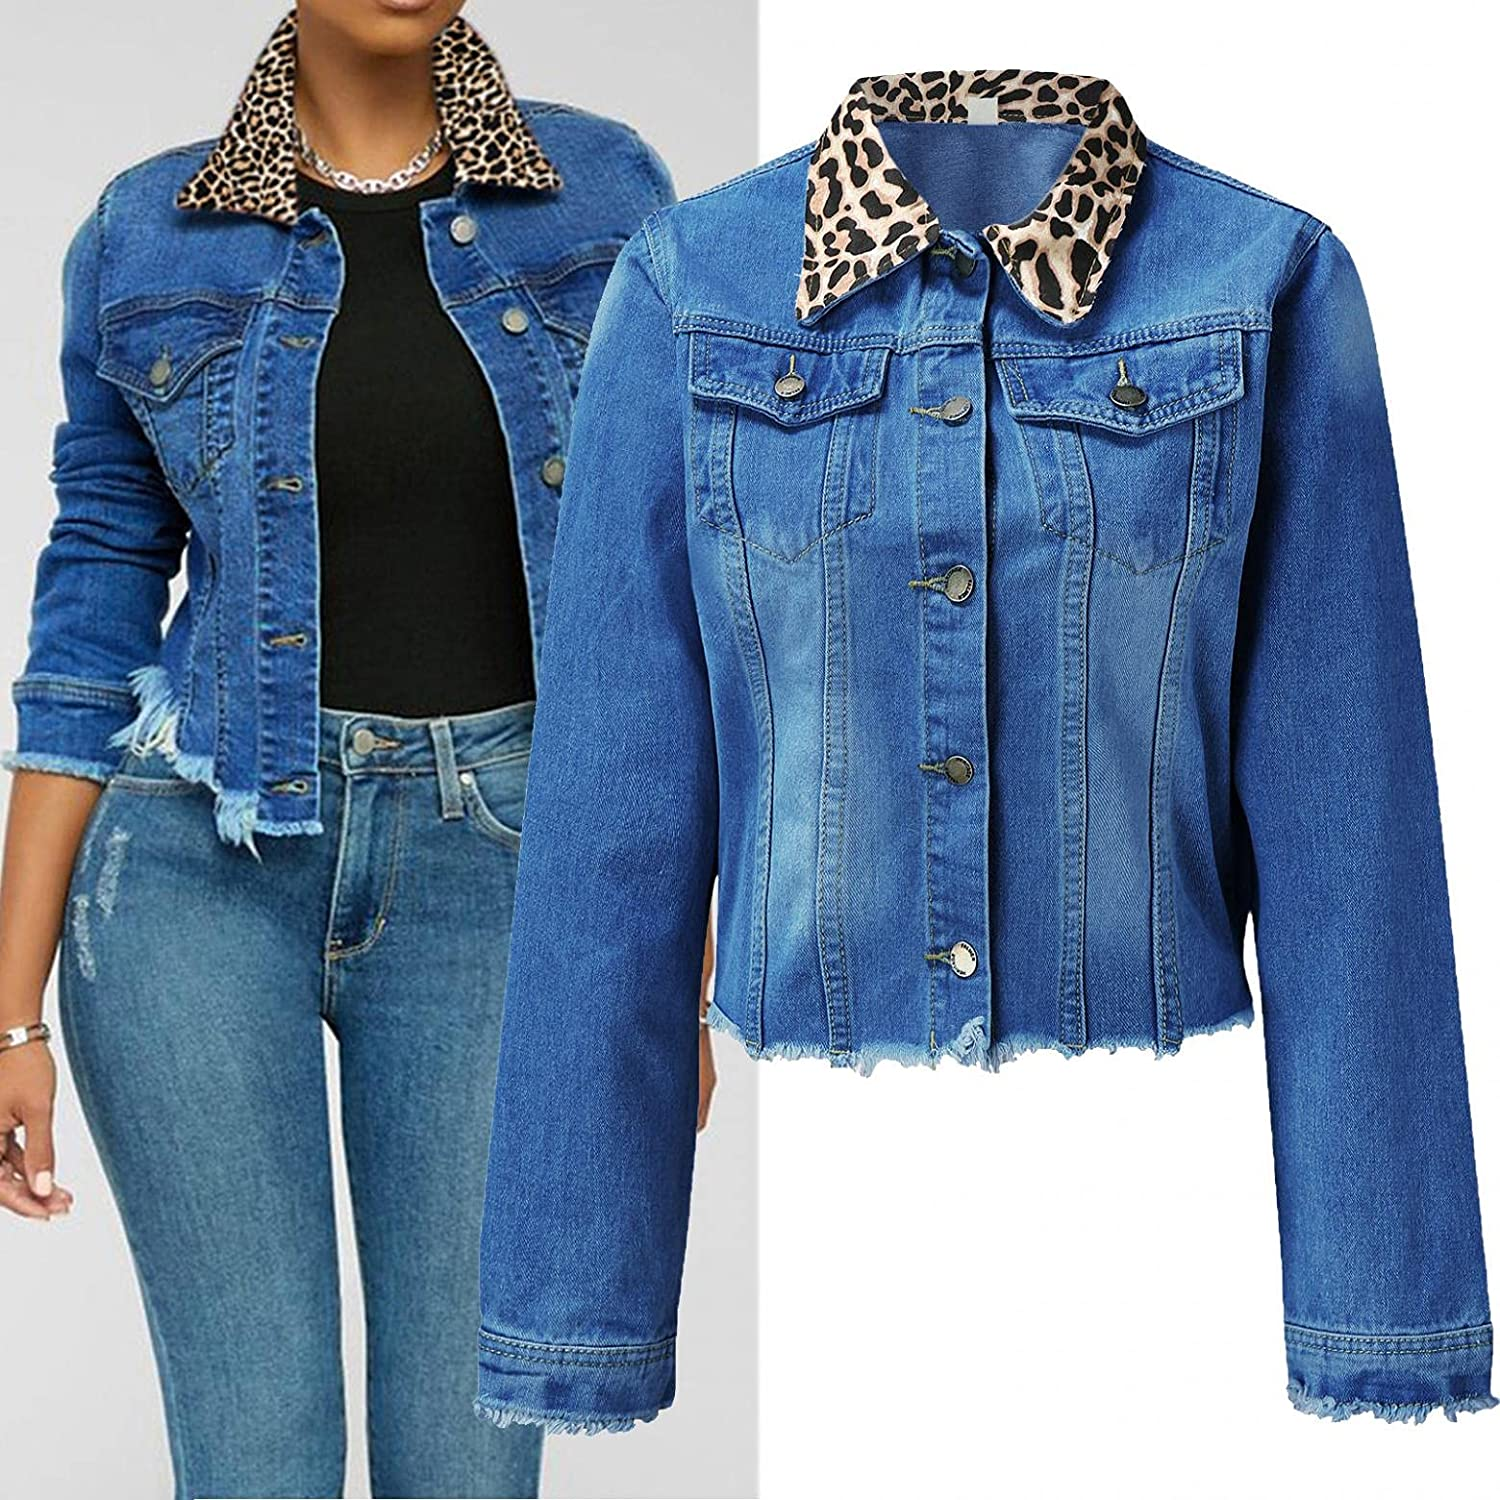 Misaky Womens Casual Blouse Button Denim Jacket With Pocket Denim Jacket Outerwear